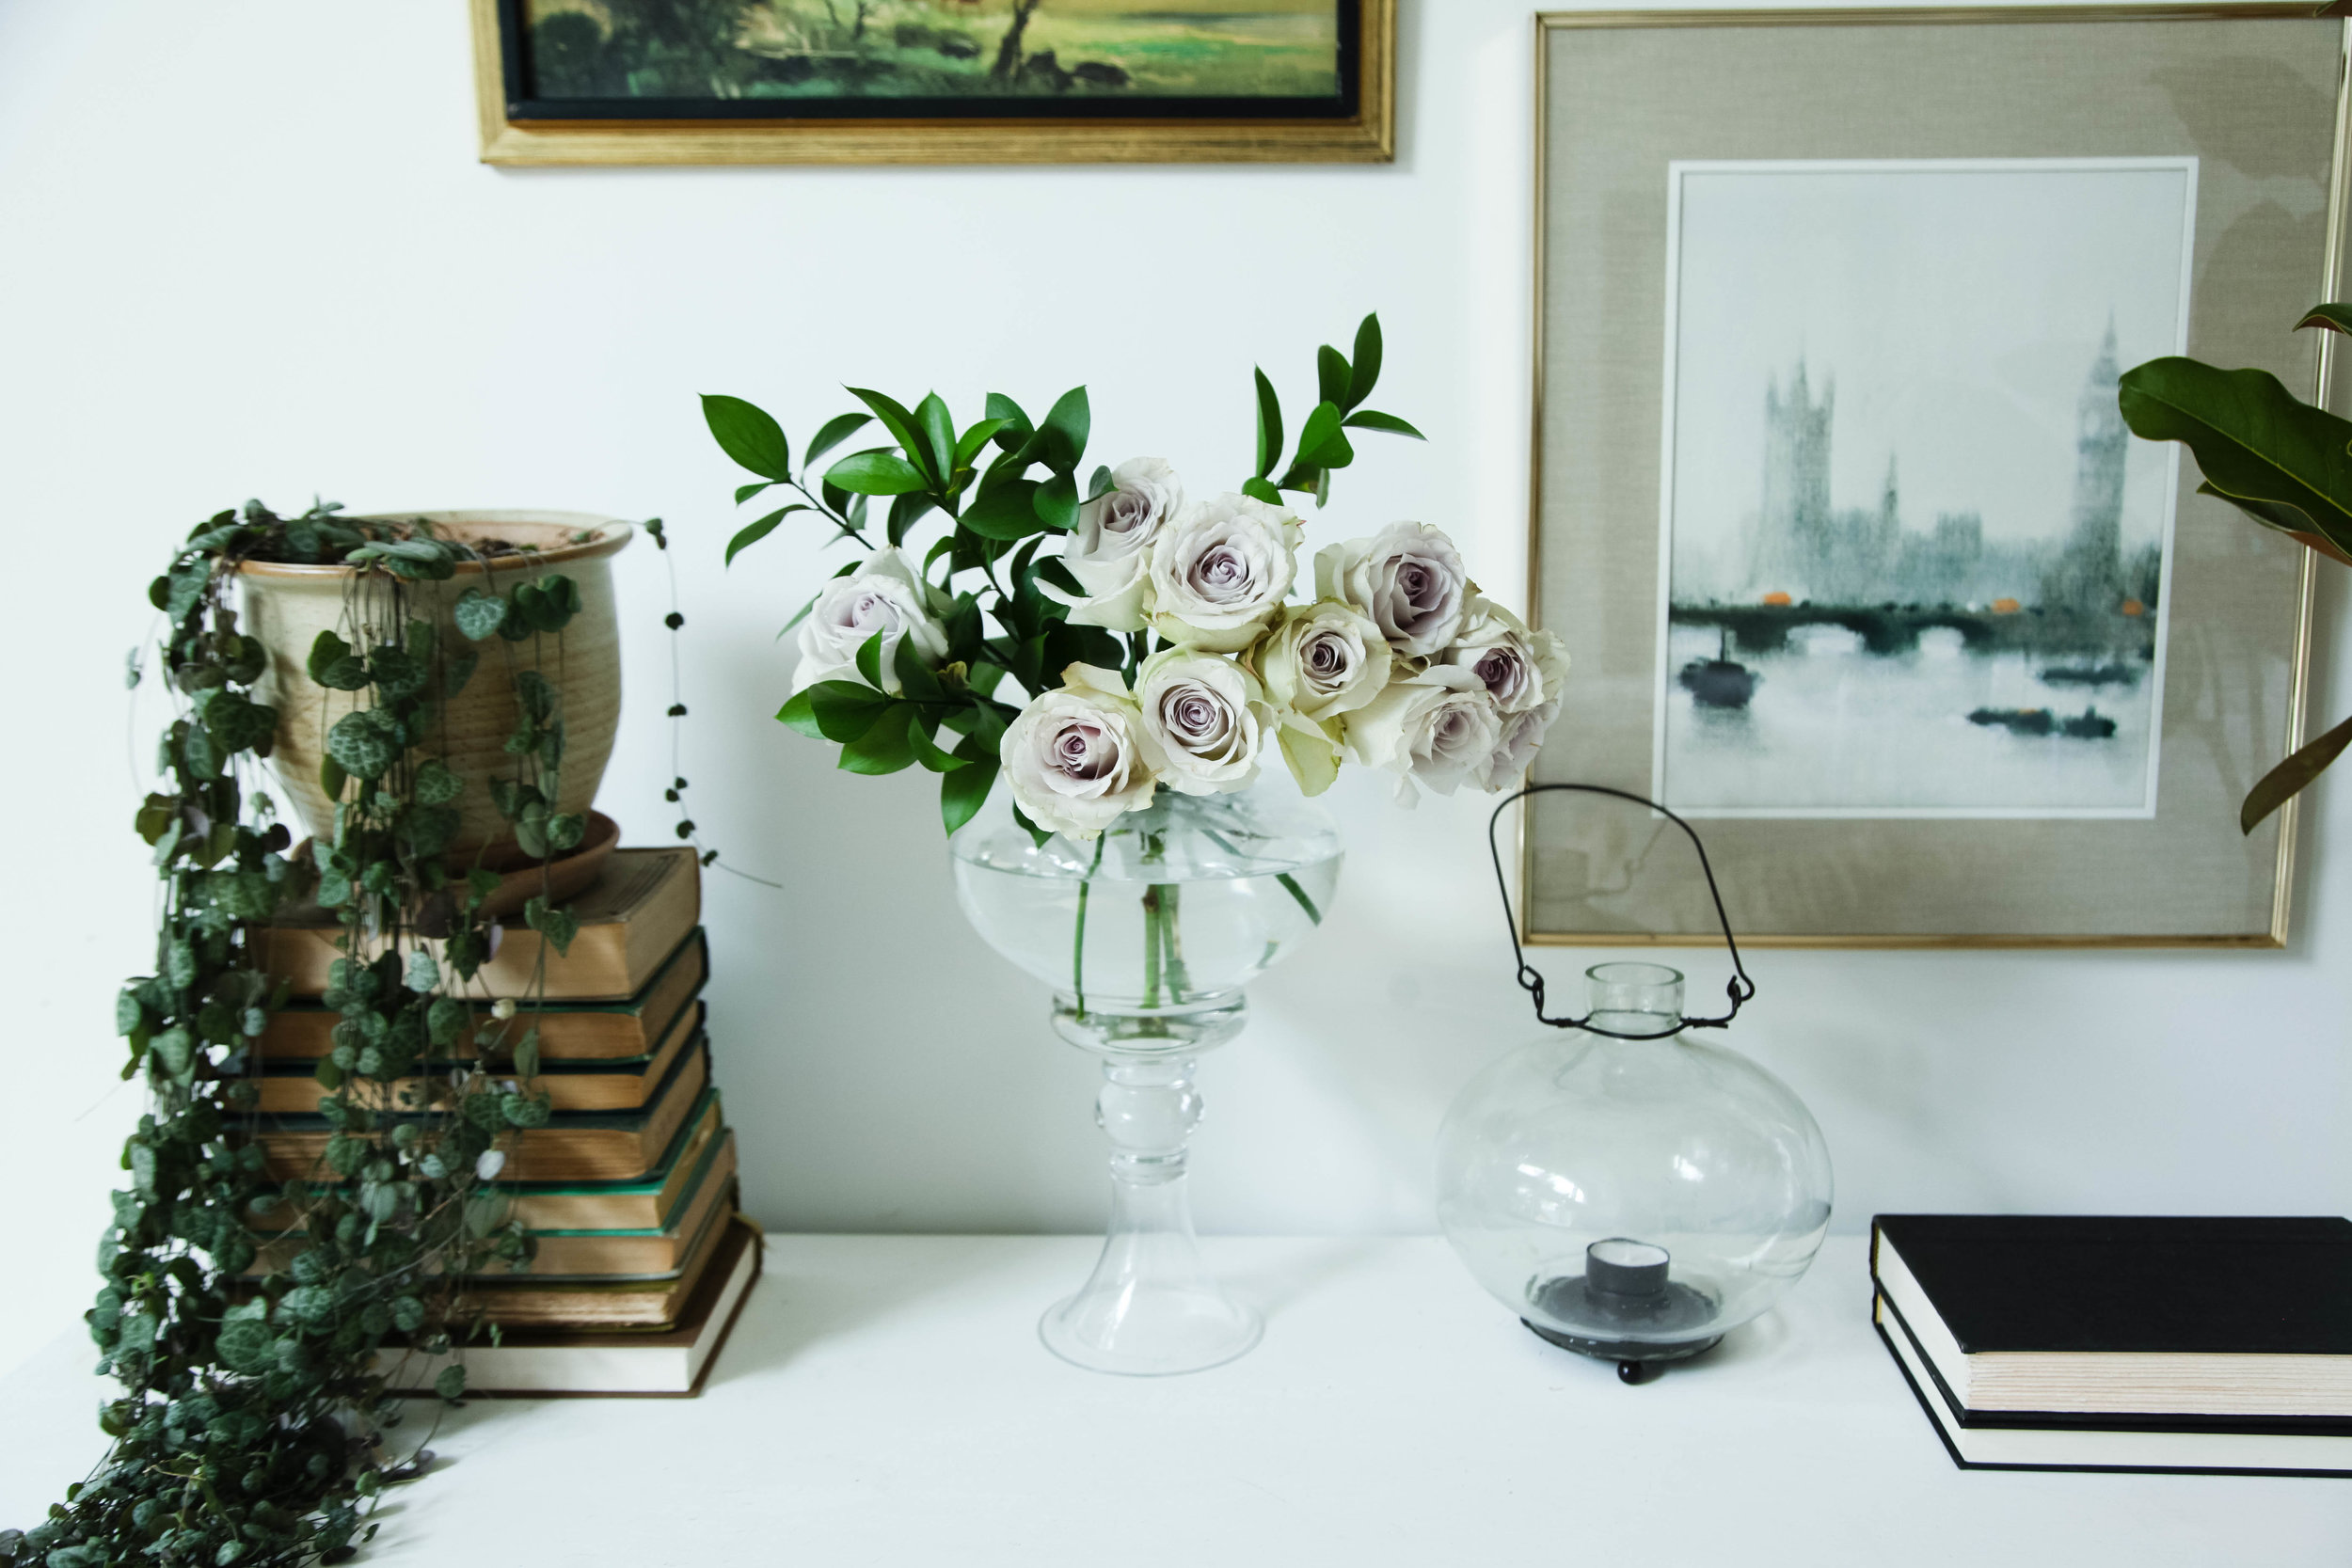 style tip: Add grey roses in a apothecary jar.